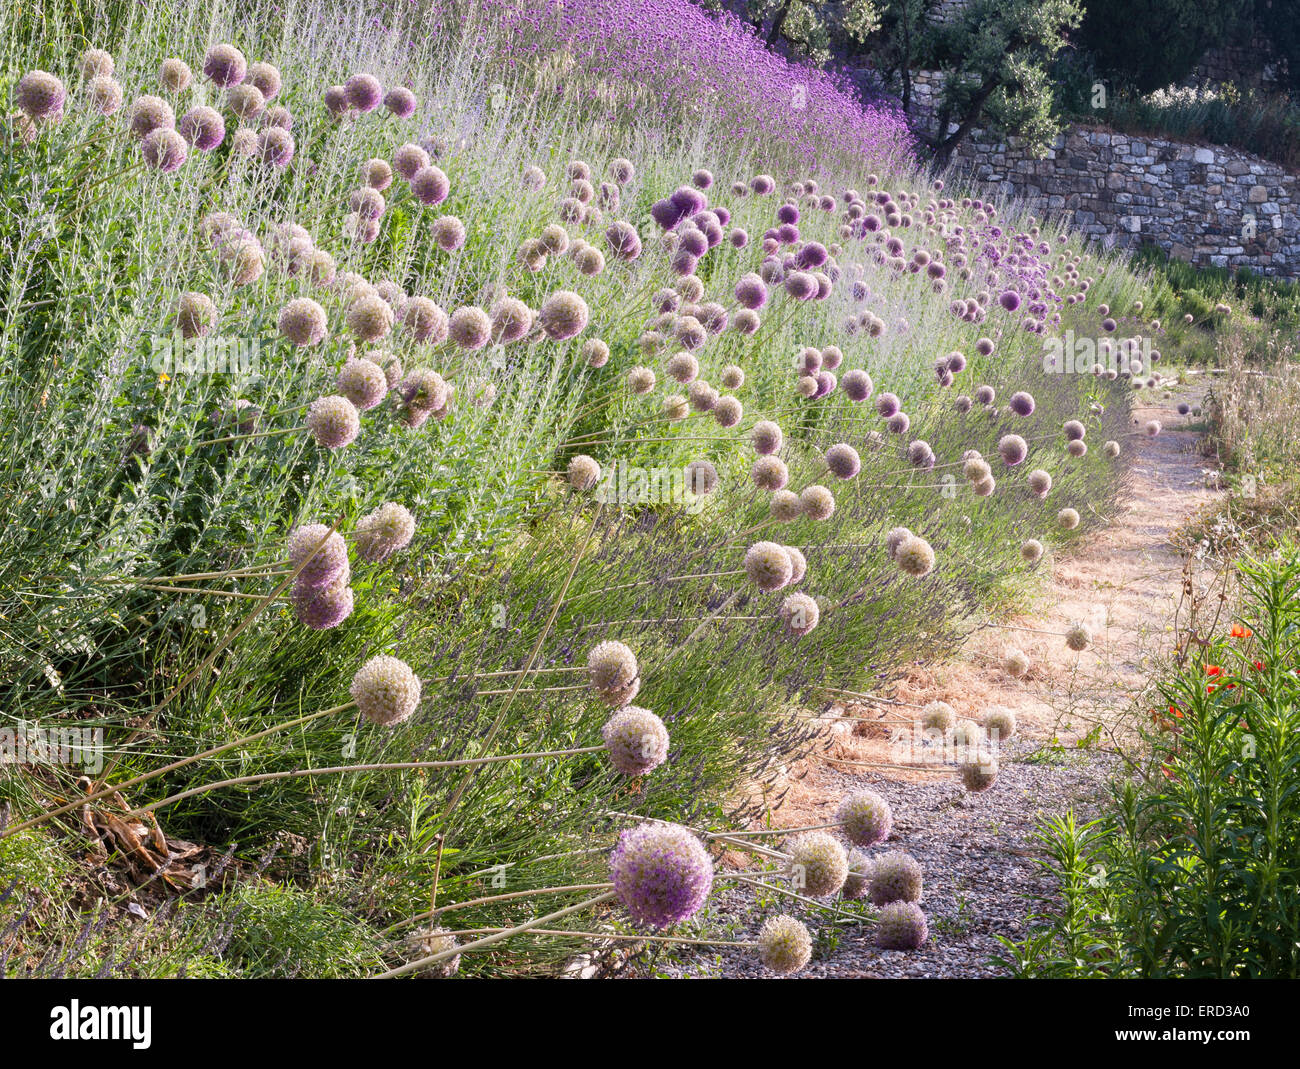 Castiglion del Bosco, Val d'Orcia, Tuscany, Italy. Alliums growing in the gardens surrounding this luxury hotel - Stock Image